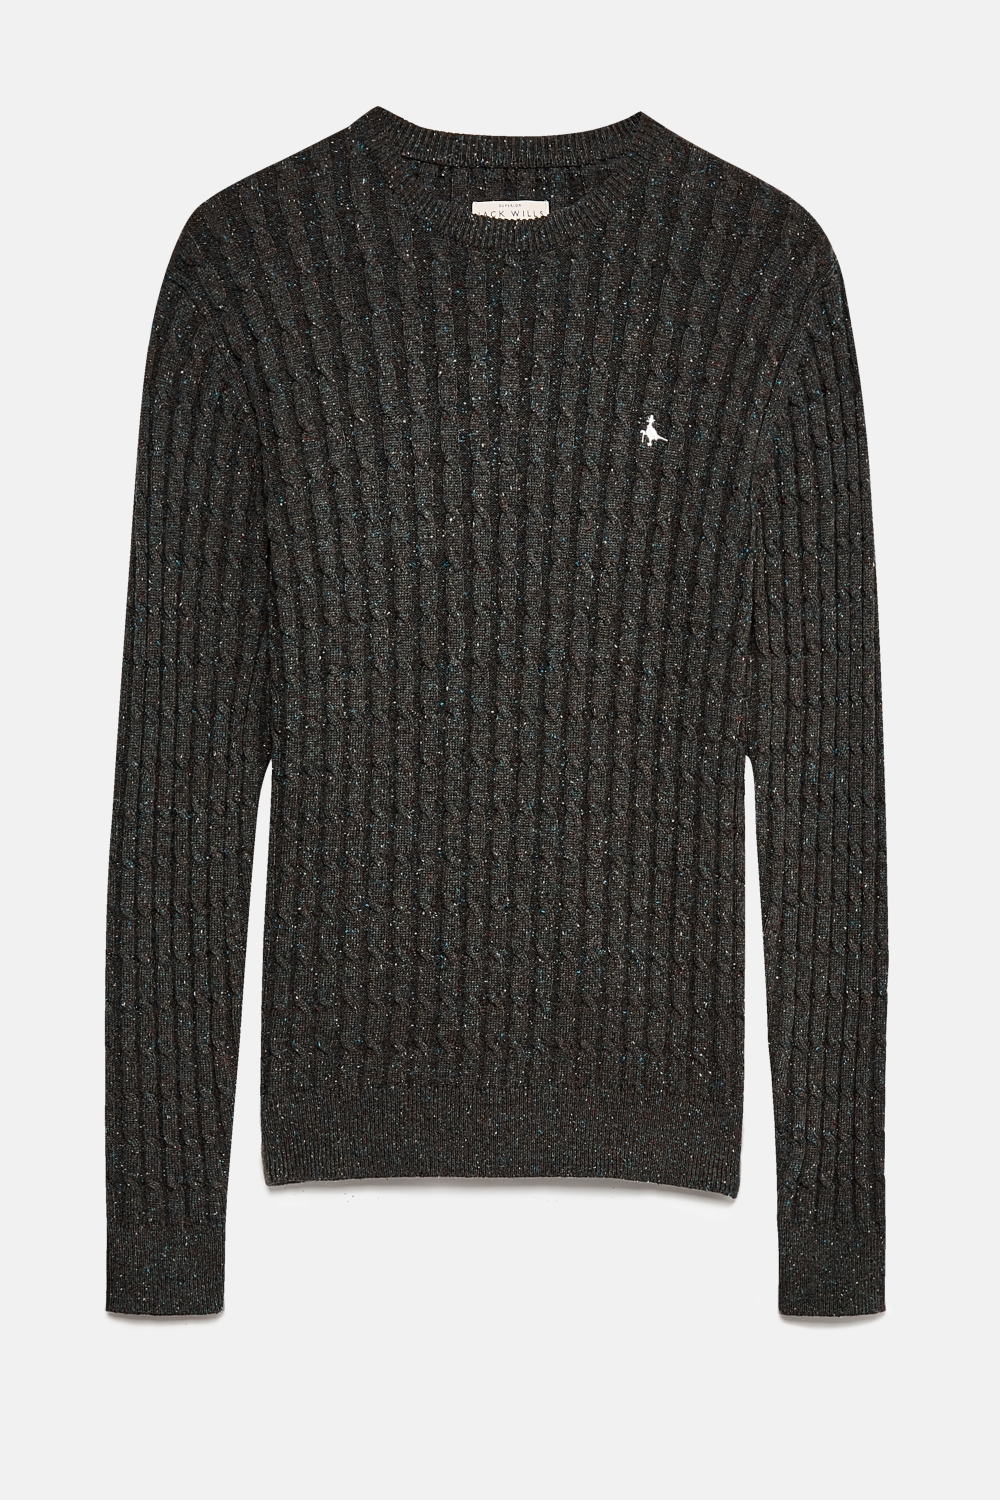 Jack Wills Charcoal MARLOW CABLE CREW NECK JUMPER